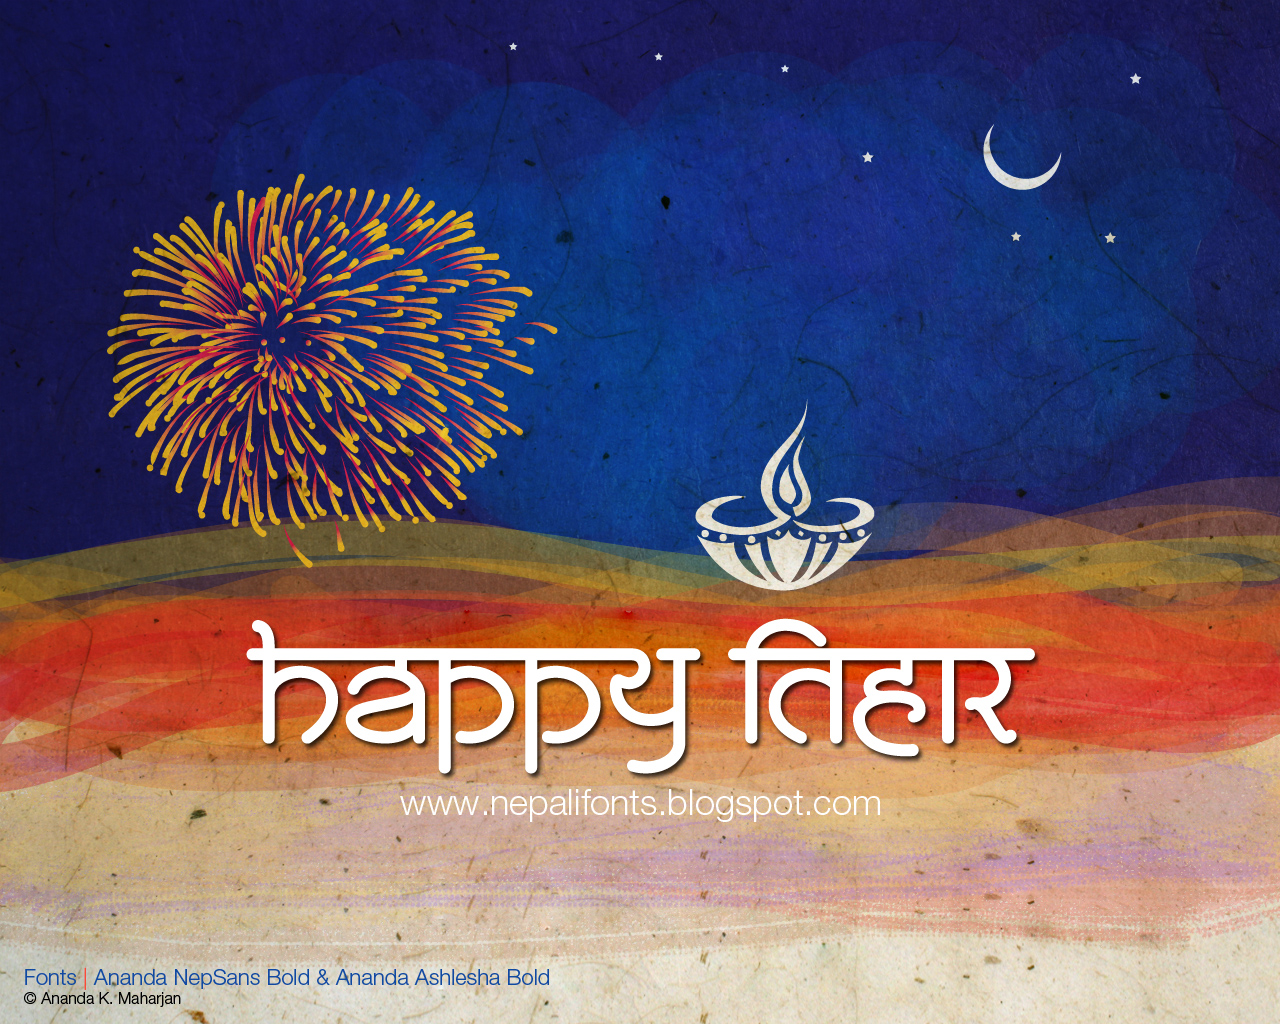 Images of Nepal: Happy Tihar Deepawali Greetings wallpapers